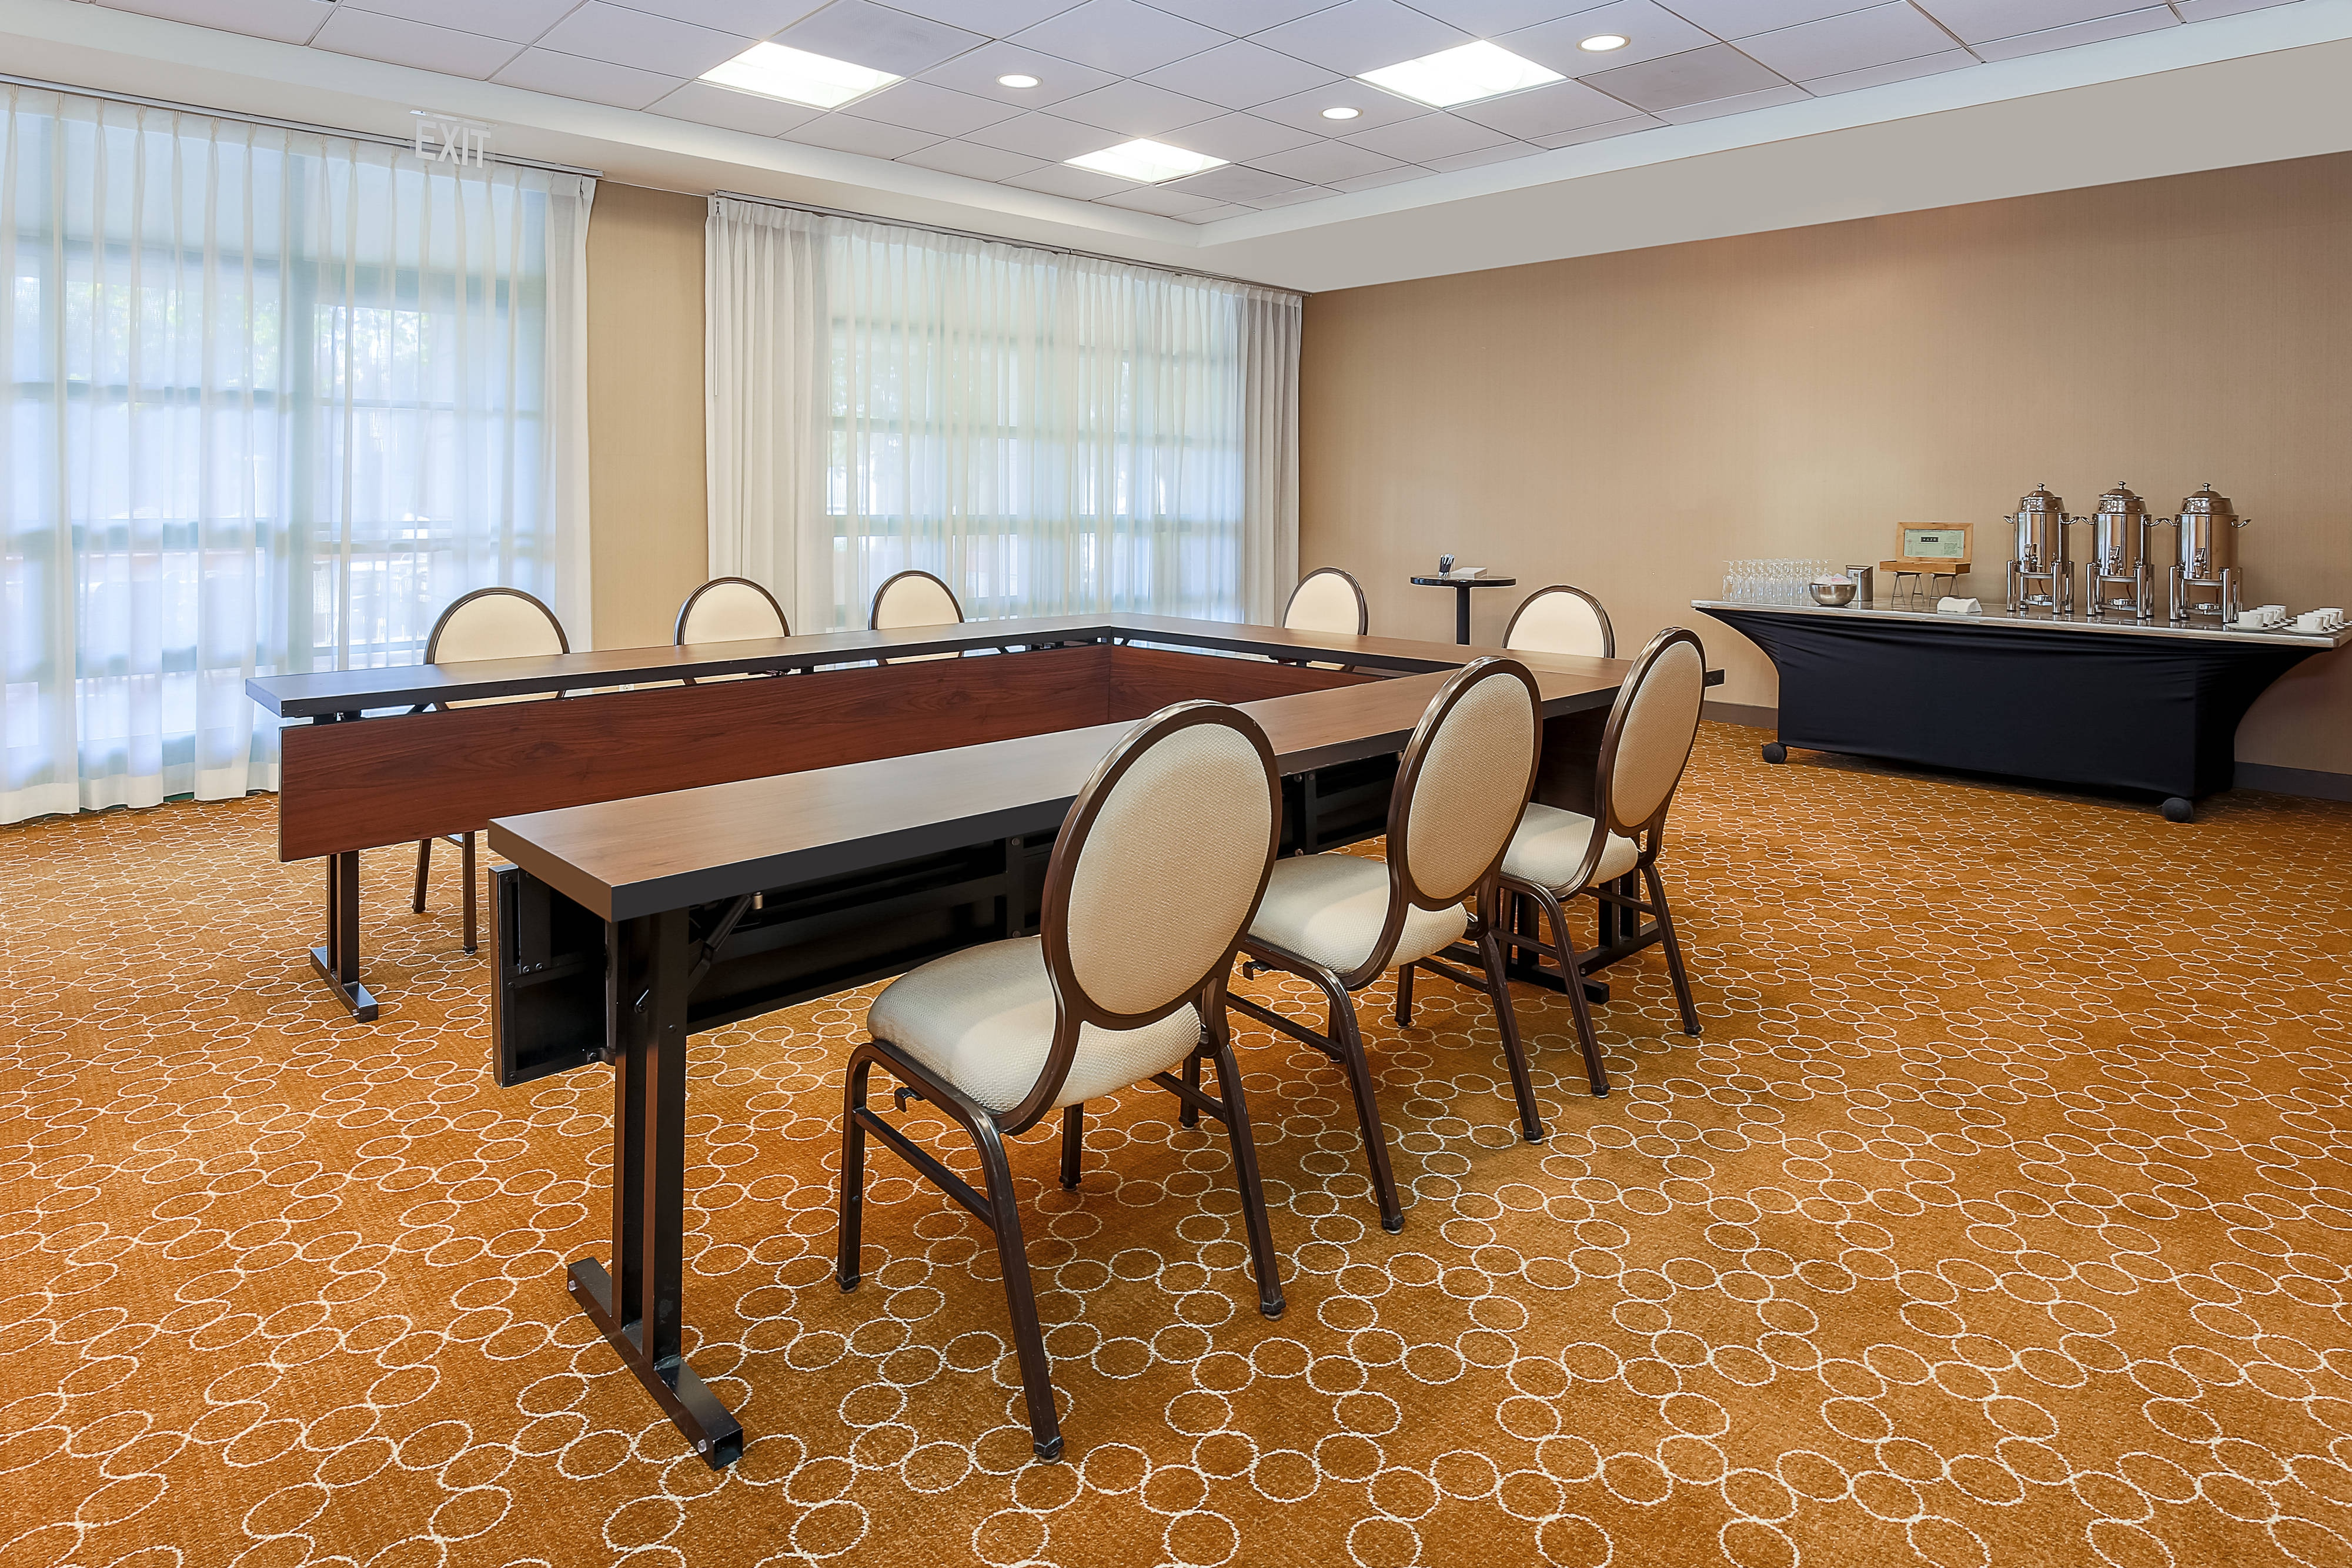 The Milpitas Meeting Room